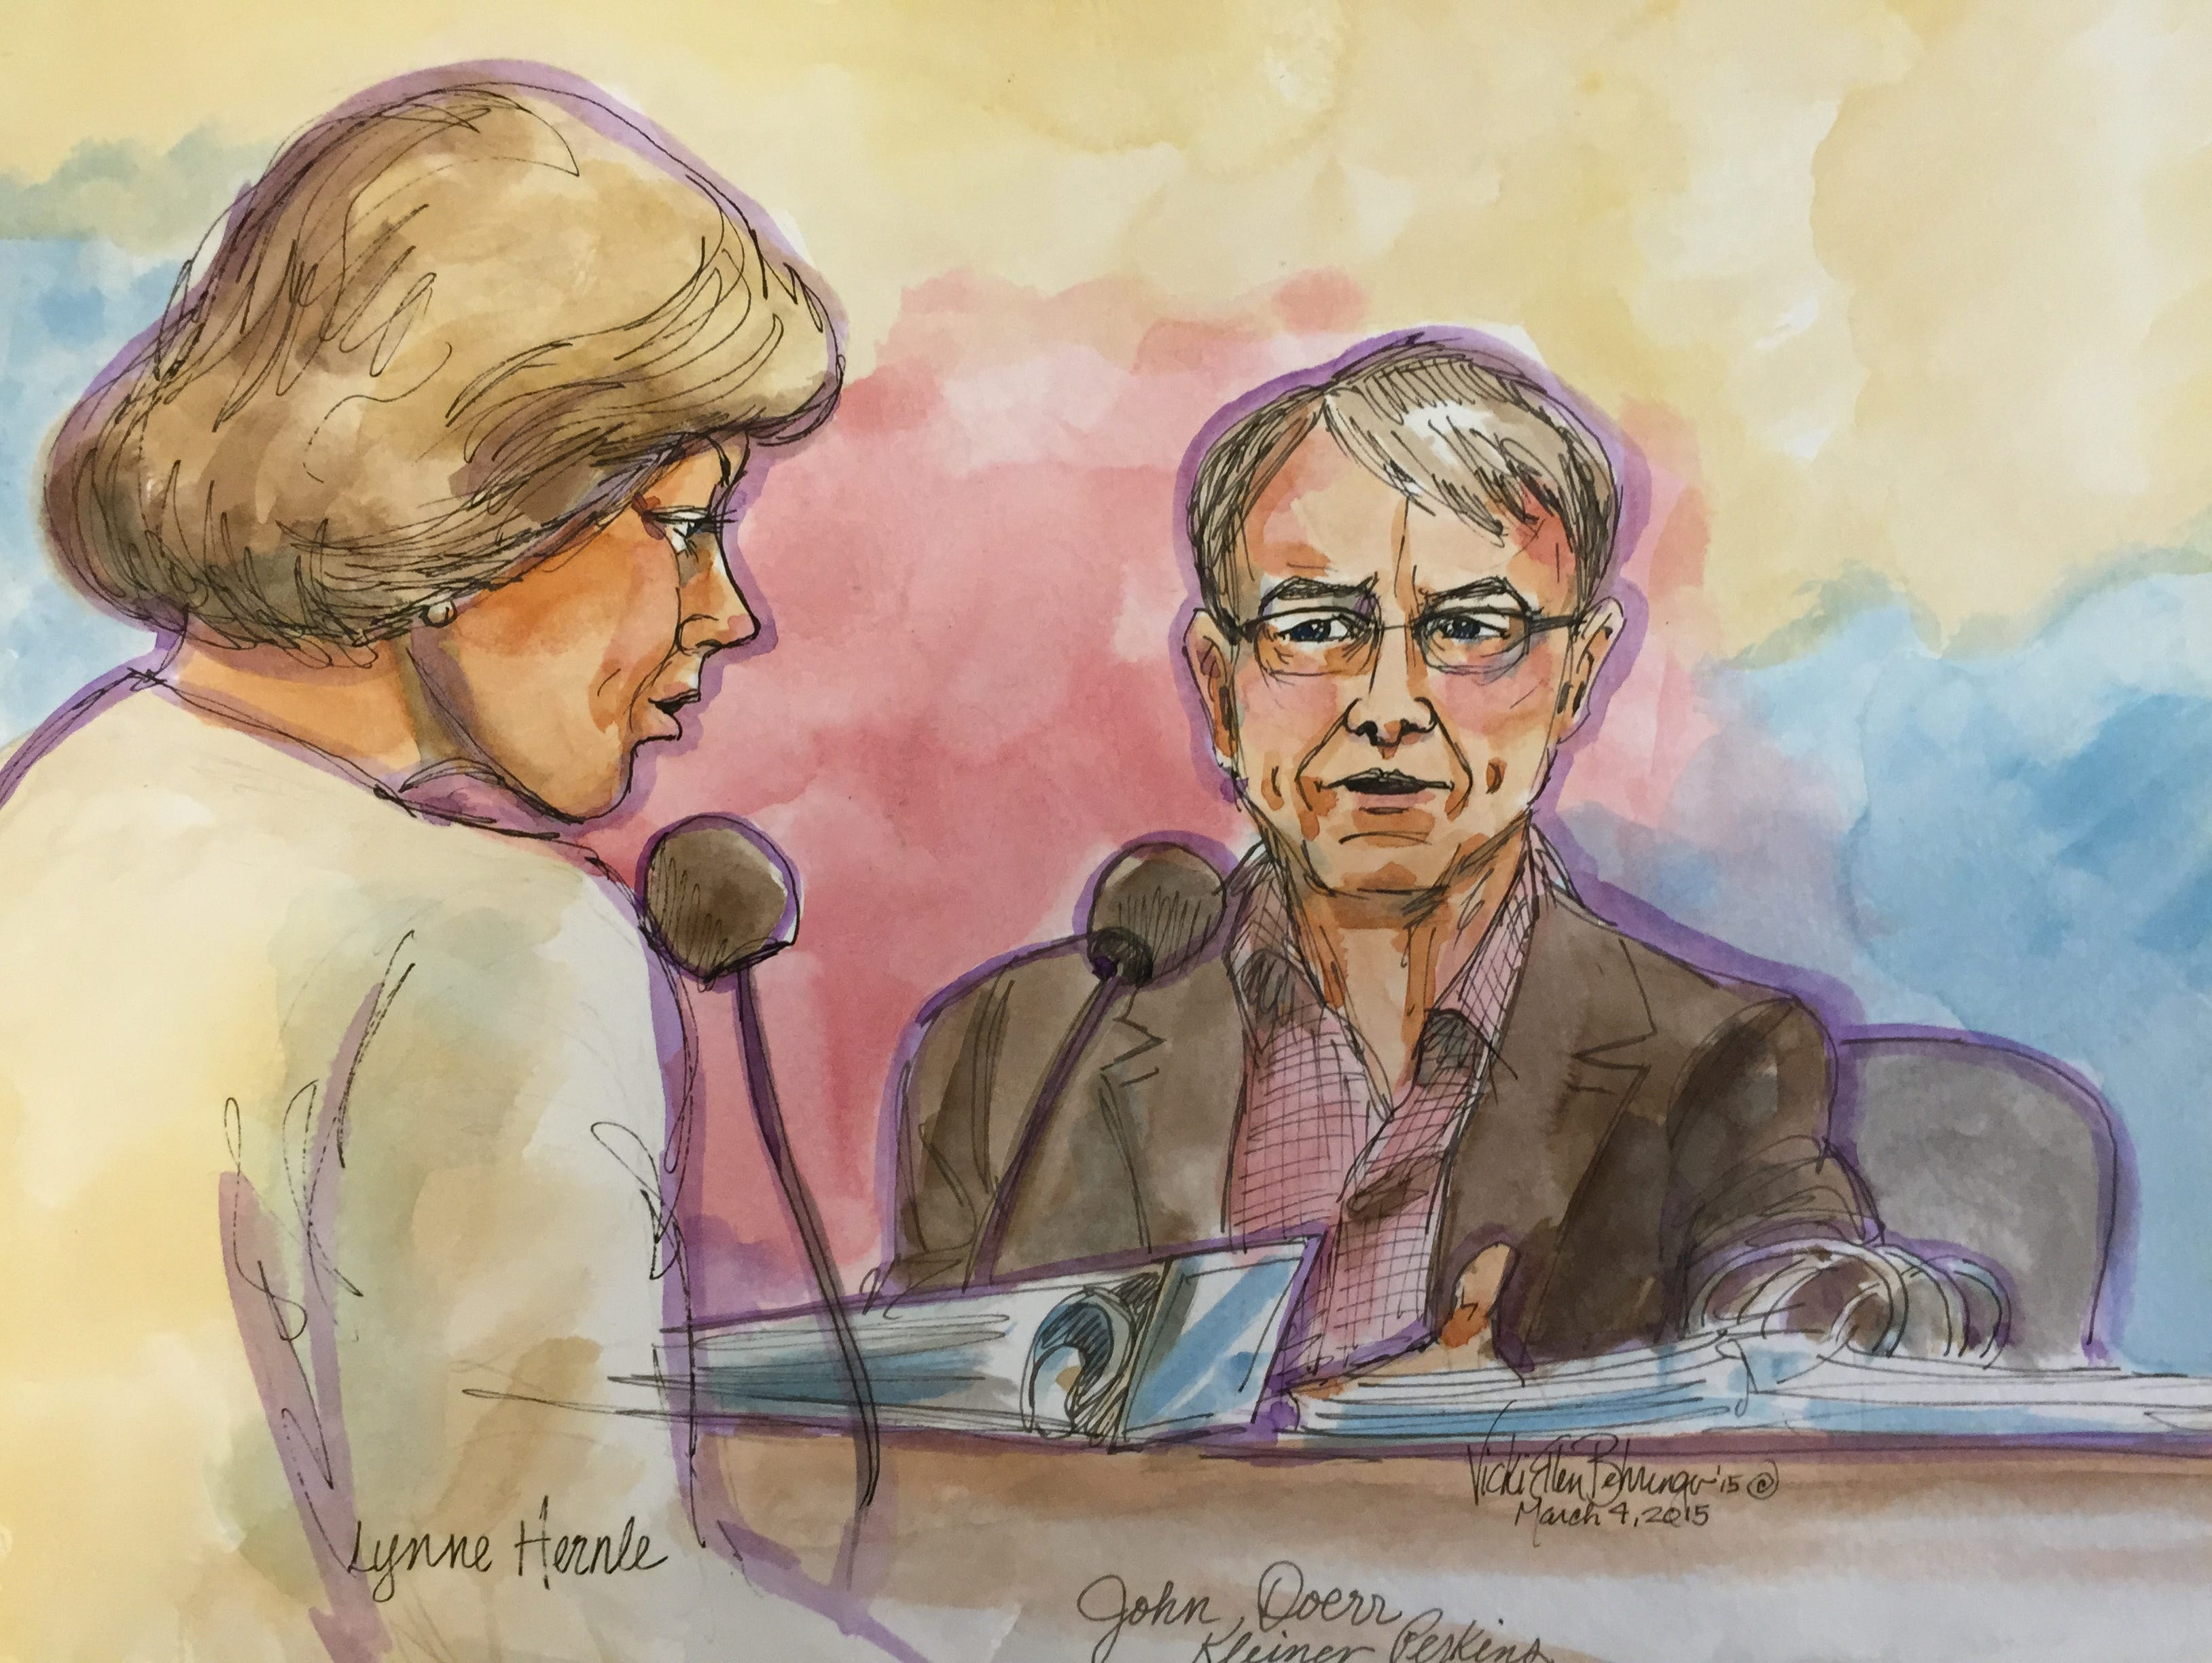 John Doerr on the stand March 4, 2015 in San Francisco Superior court in the gender discrimination trial of Ellen Pao versus venture capital firm Kleiner Perkins. He is being questioned by Kleiner lawyer Lynne Hermle